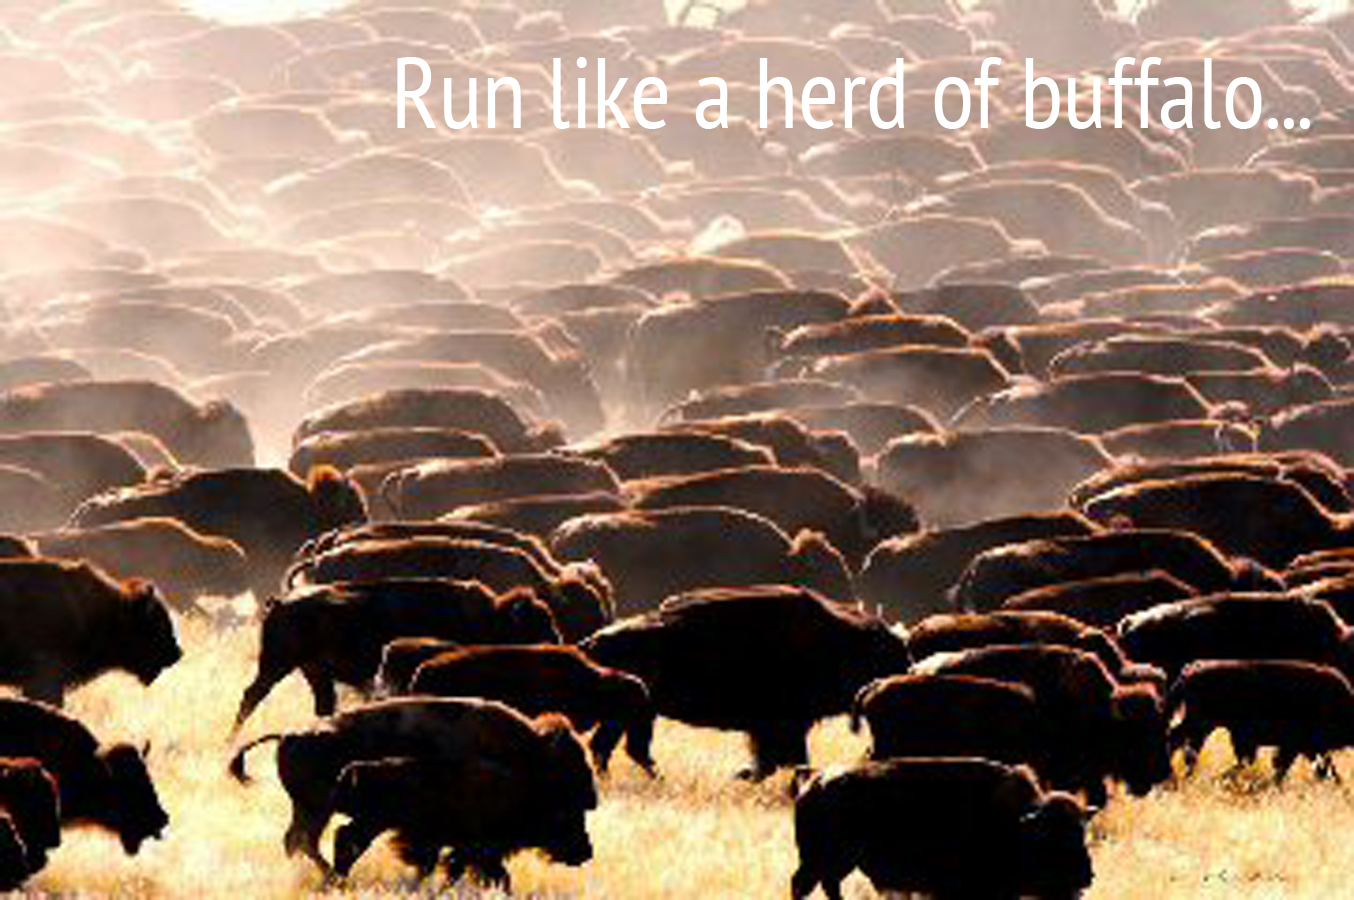 Run like a herd of buffalo